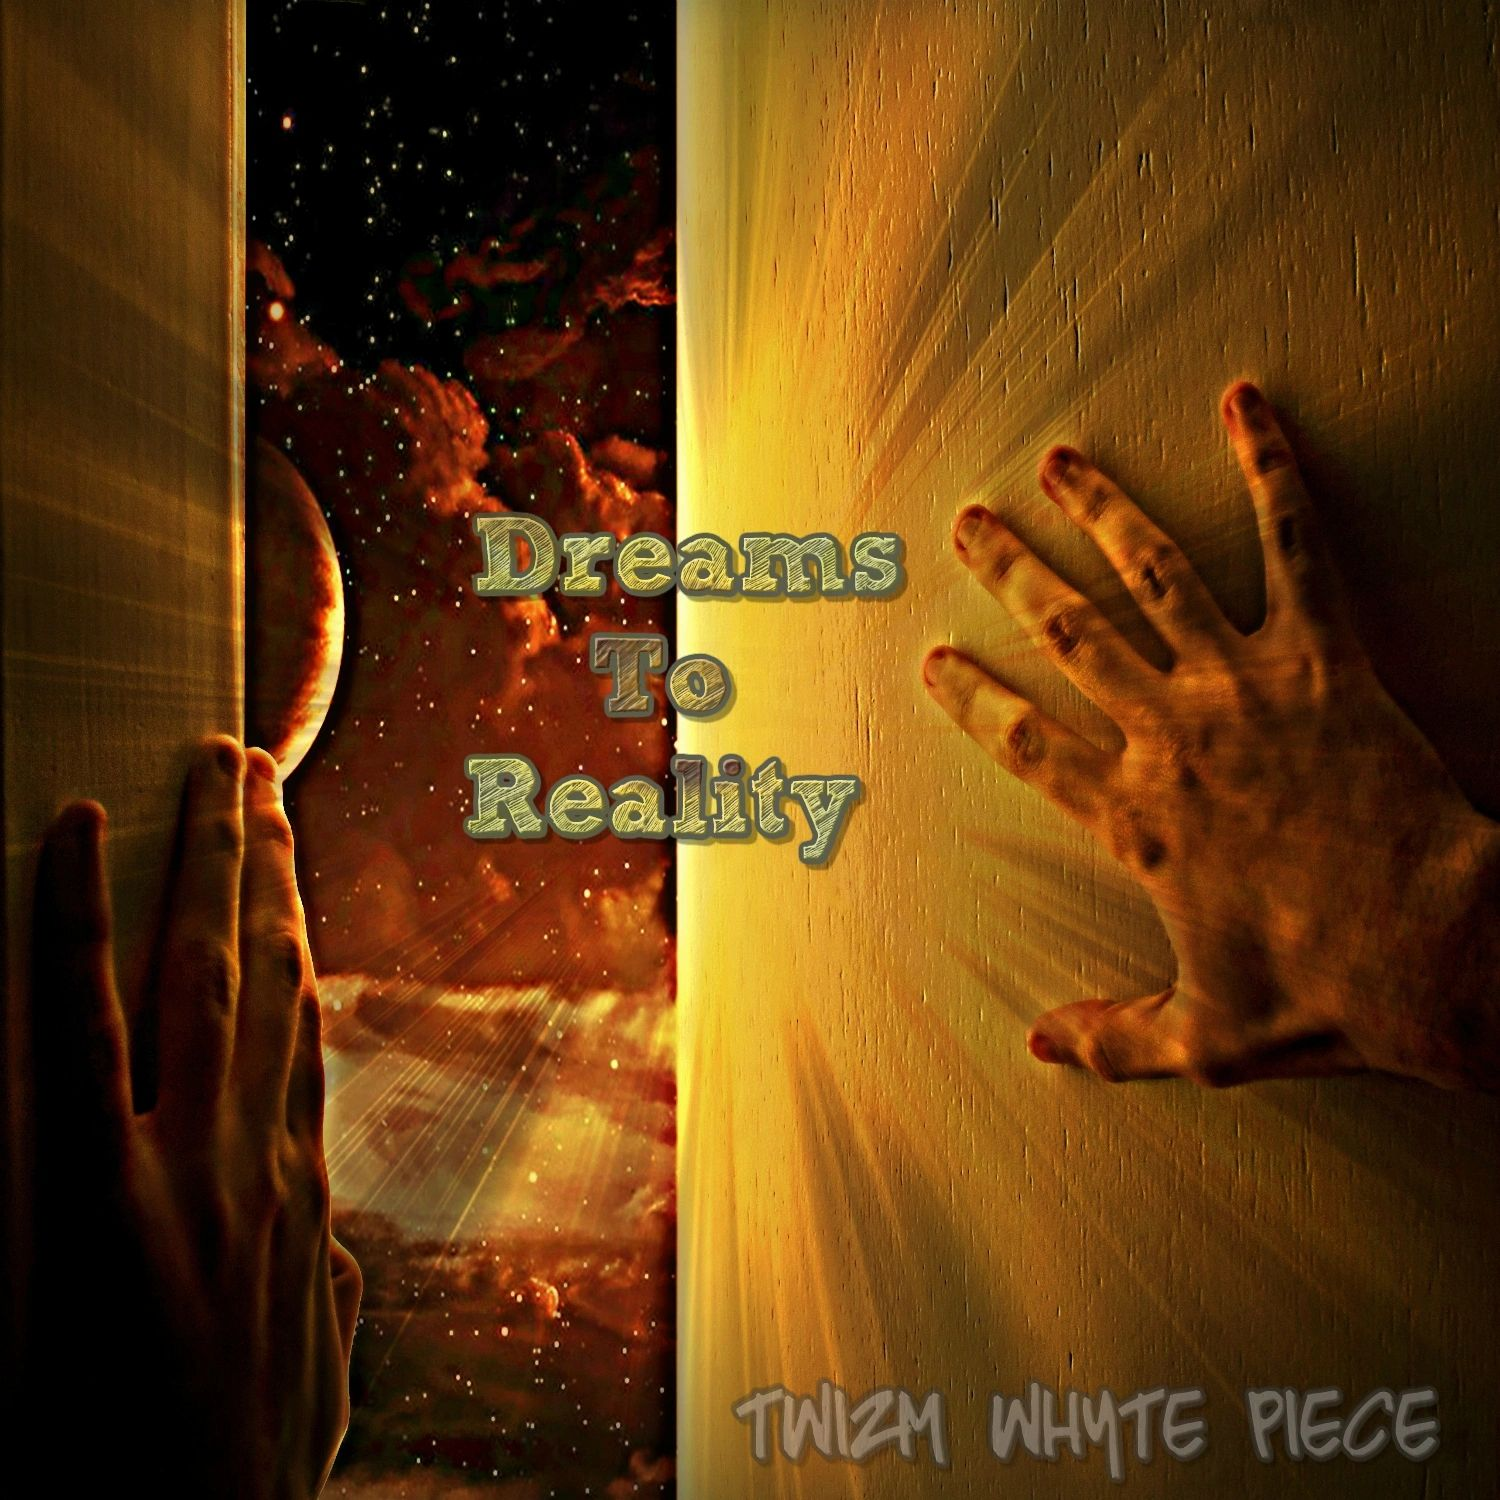 New Music Album #DreamsToReality From #TwizmWhytePiece #TwpNation